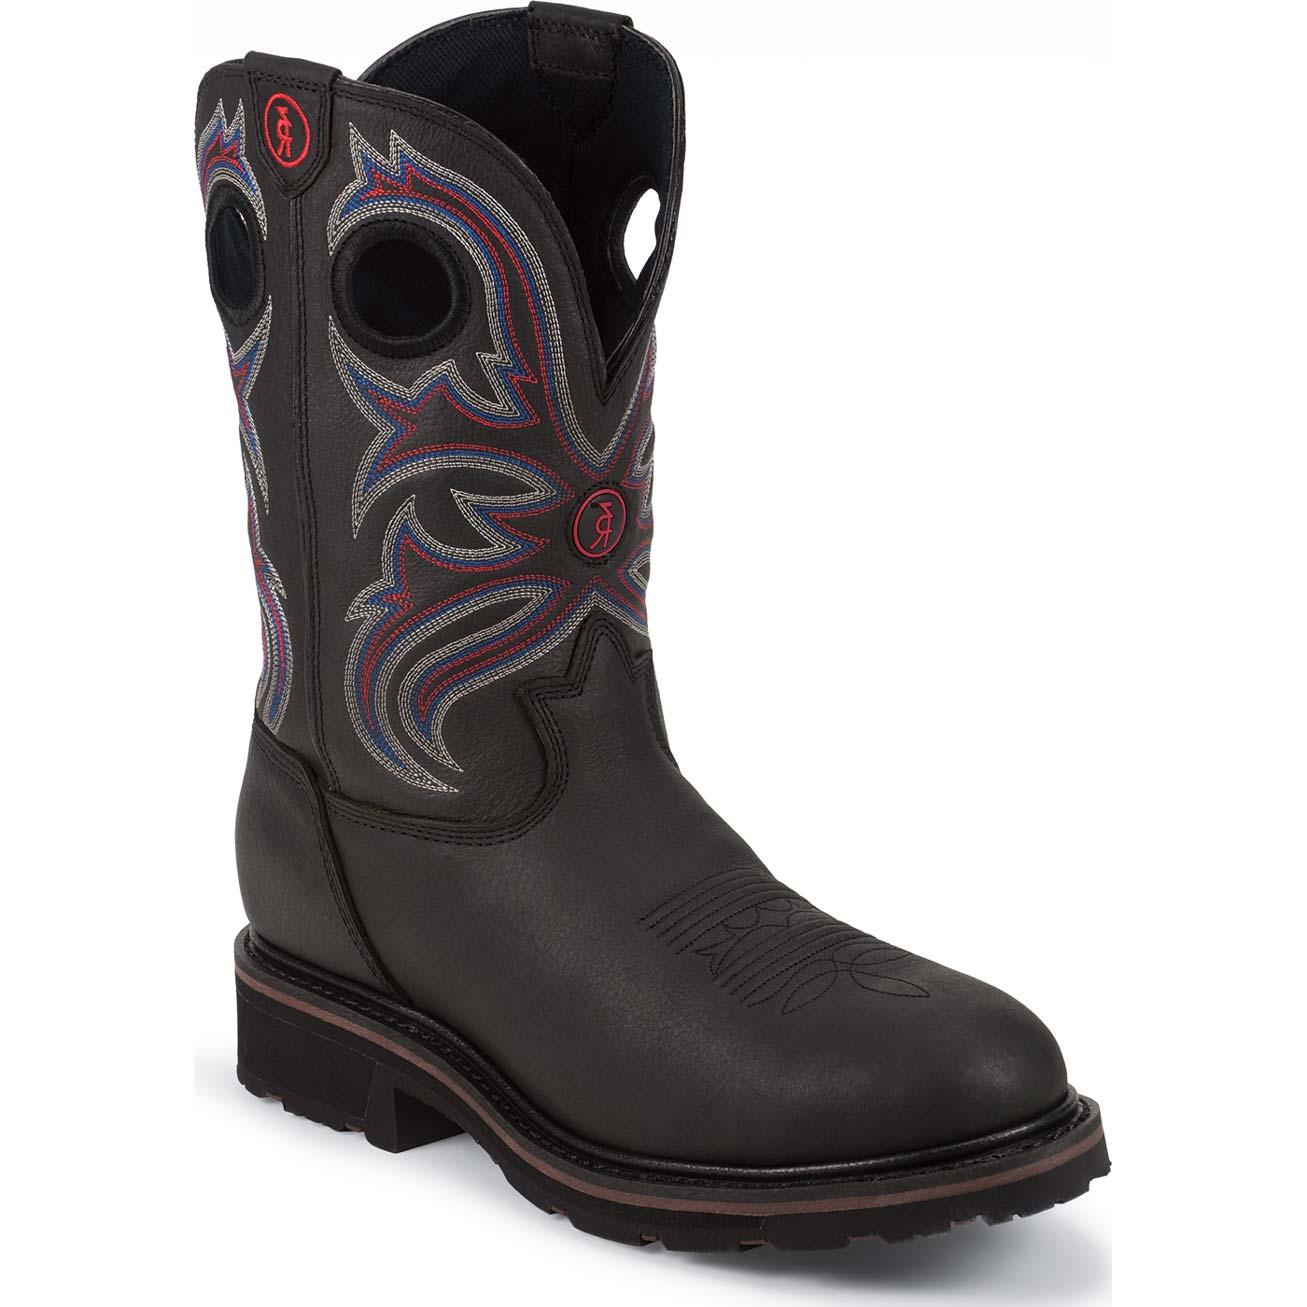 8e71468ad35 Tony Lama 3R Steel Toe Waterproof Western Work Boot